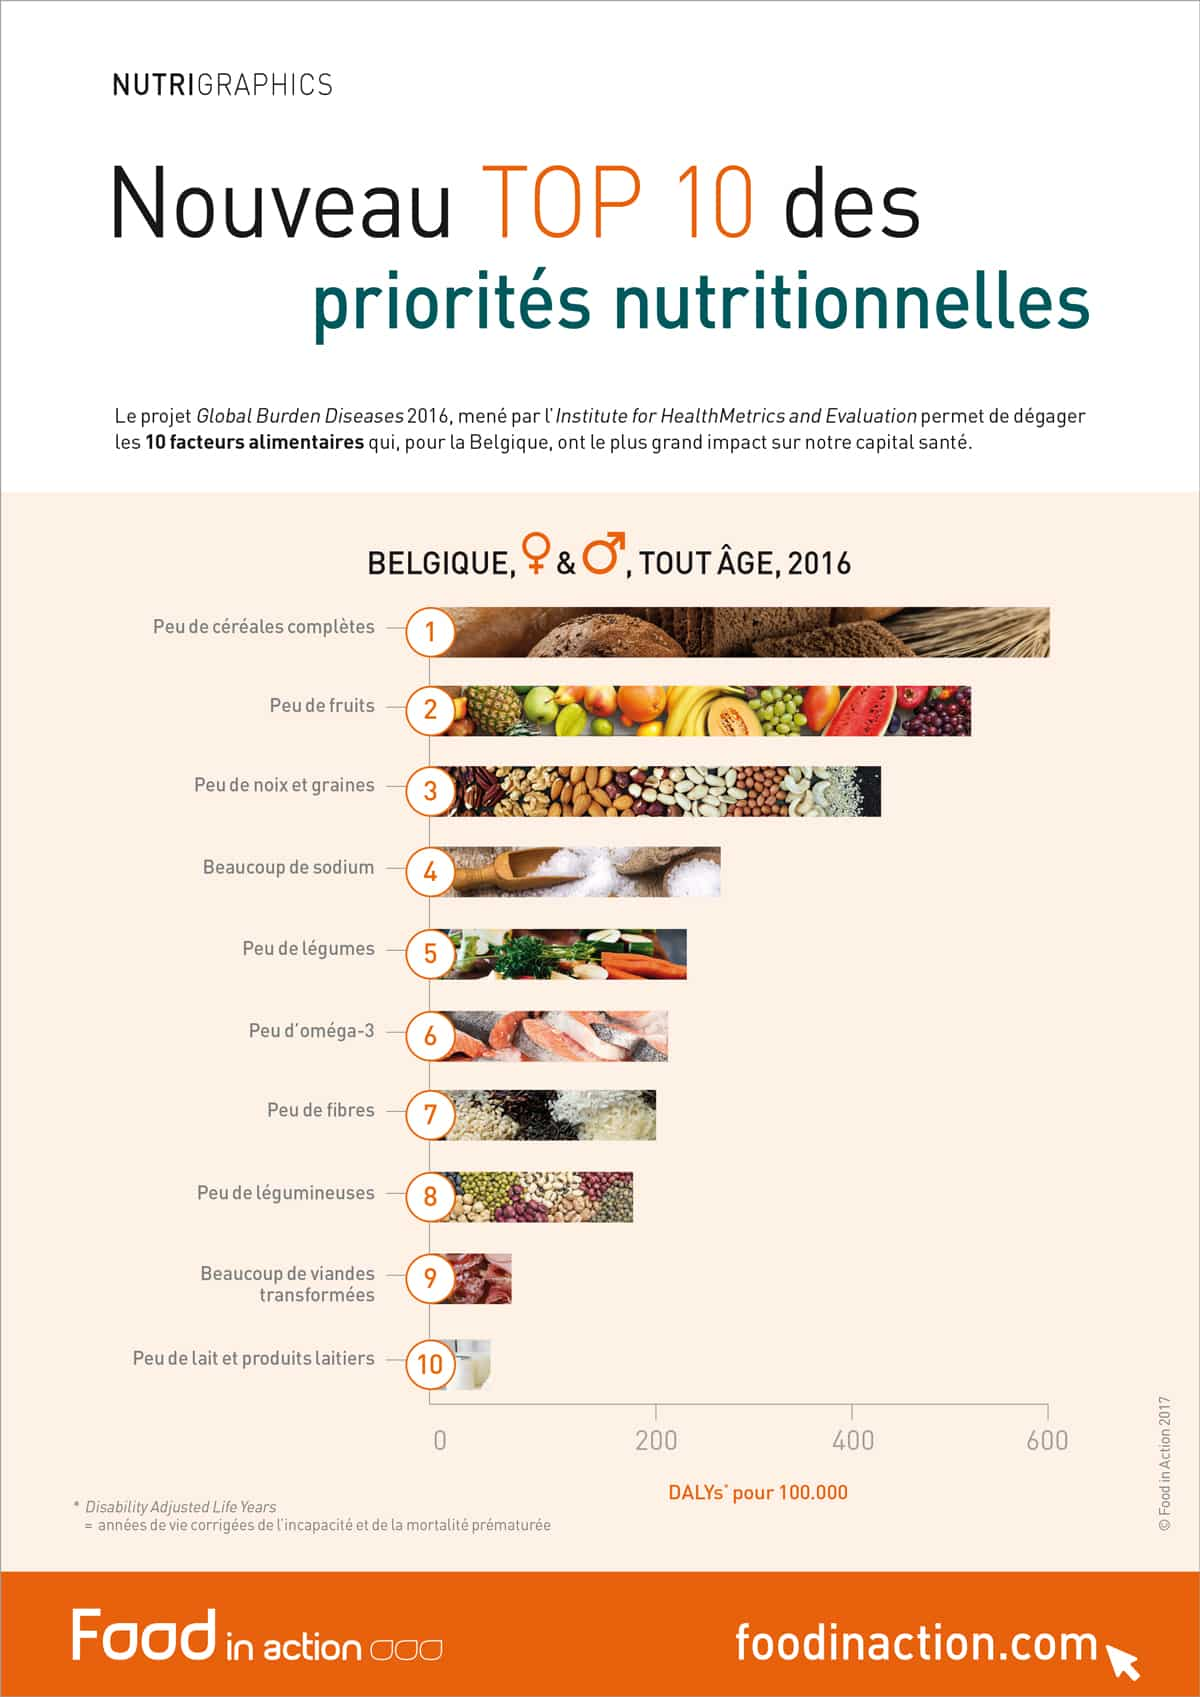 nutrigraphics-top-10-priorites-nutritionnelles